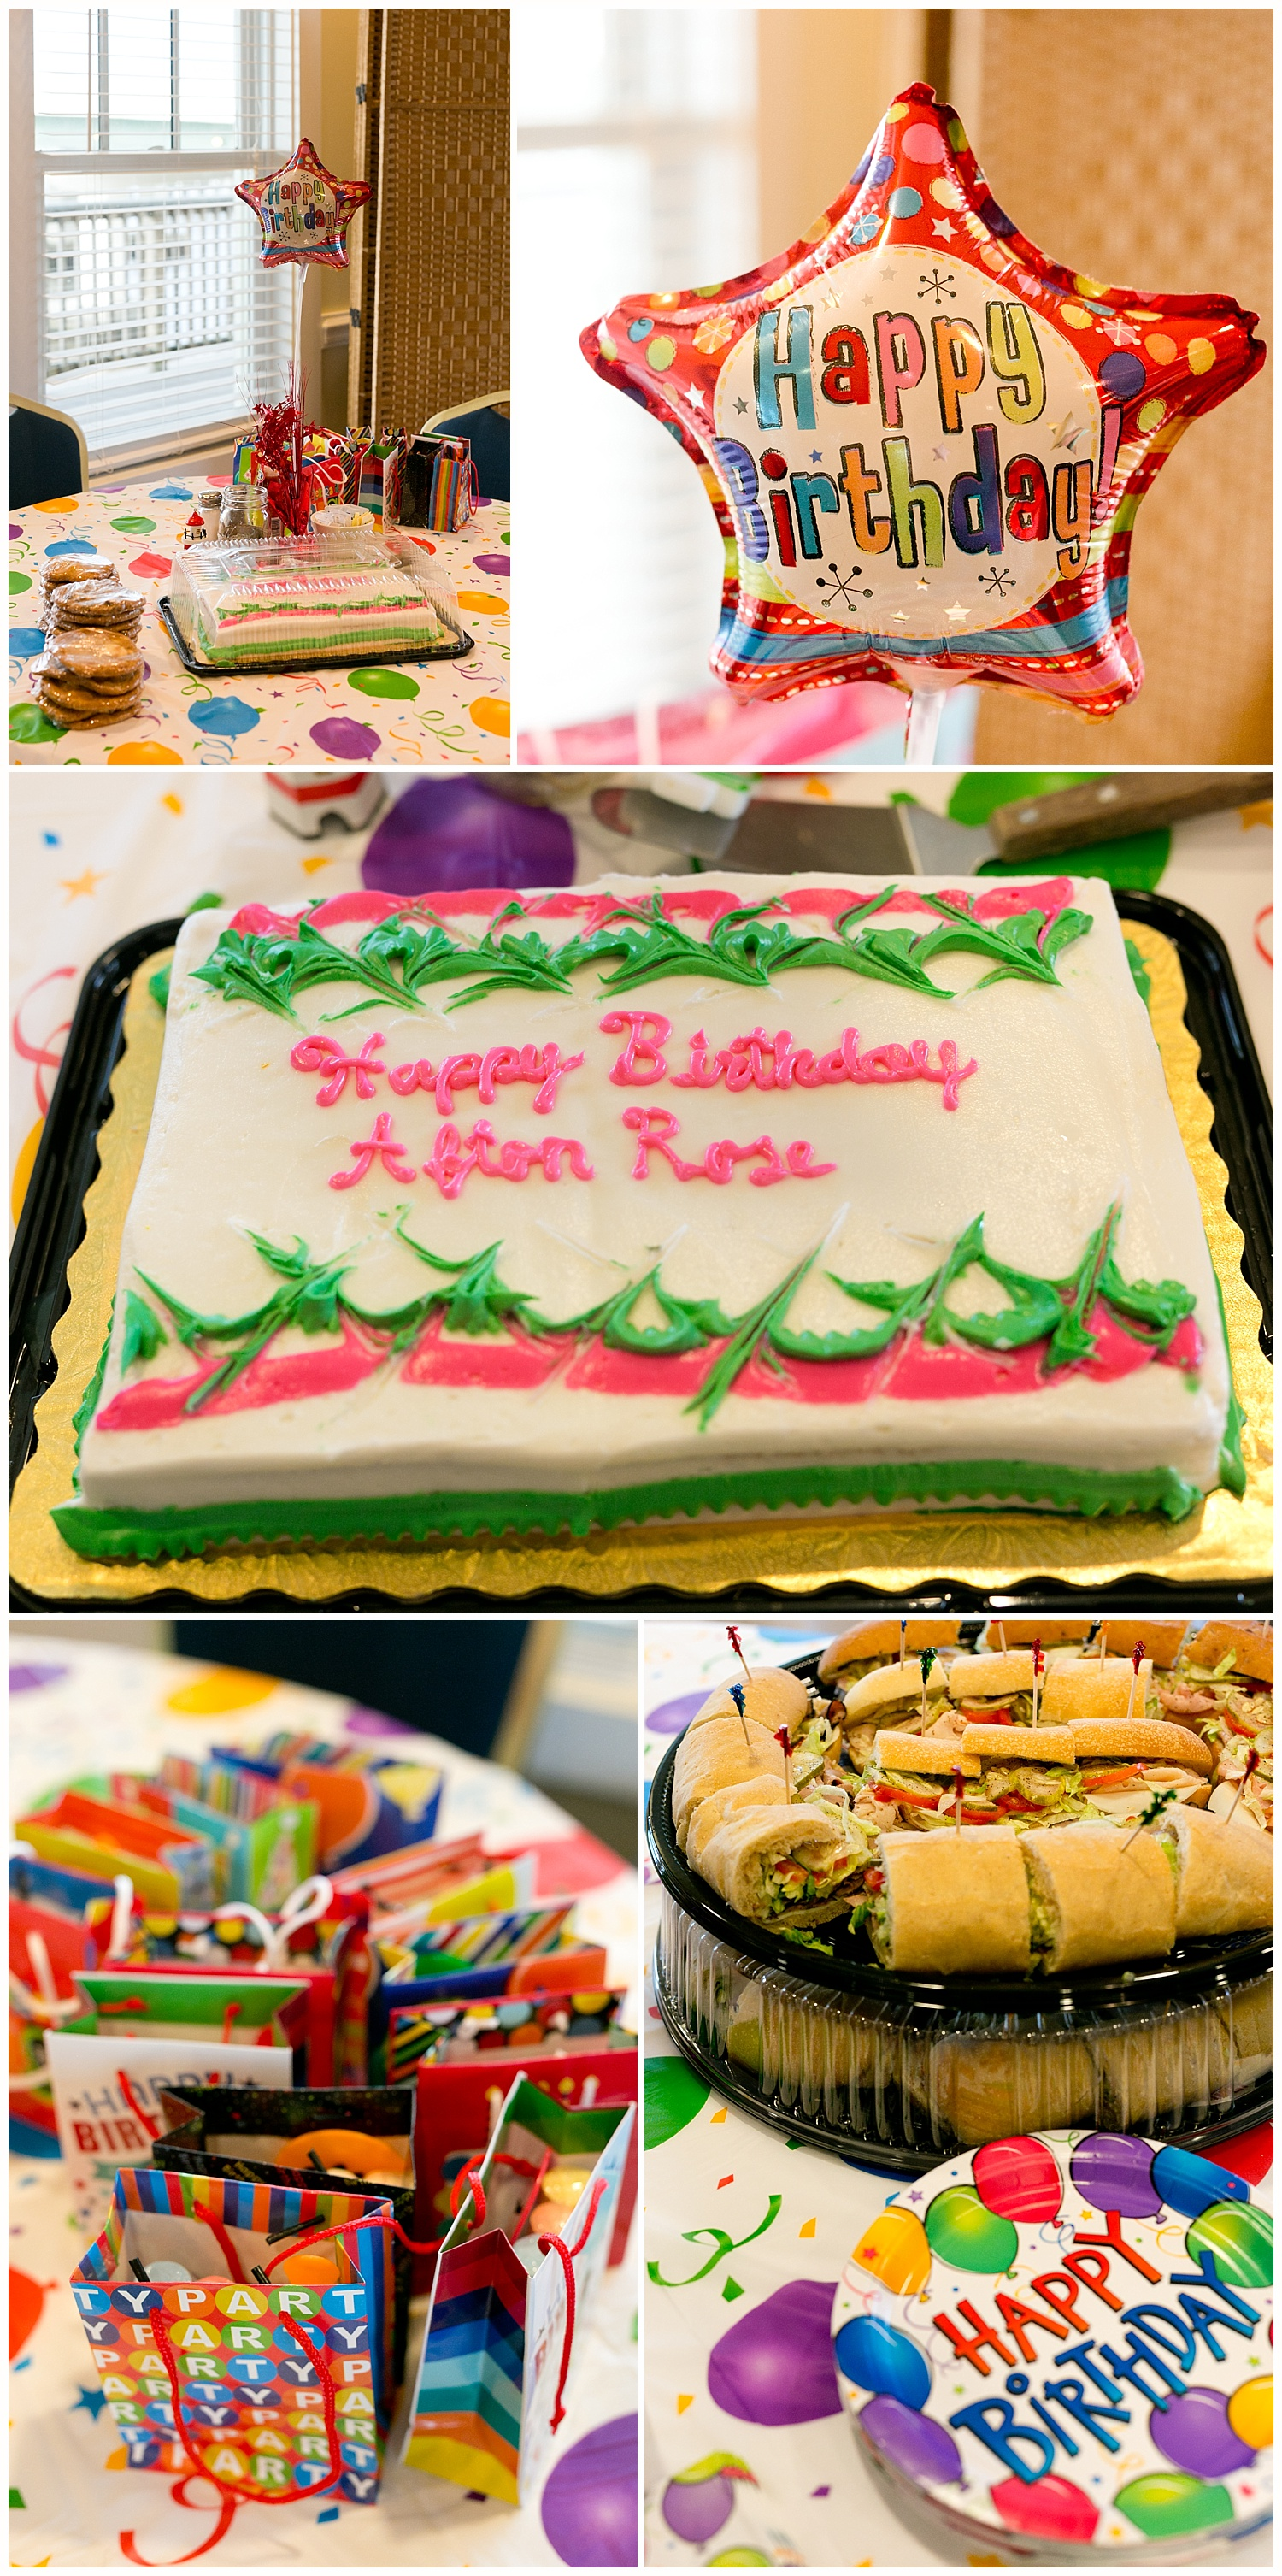 classic birthday party decorations - cake, balloon, gift bags